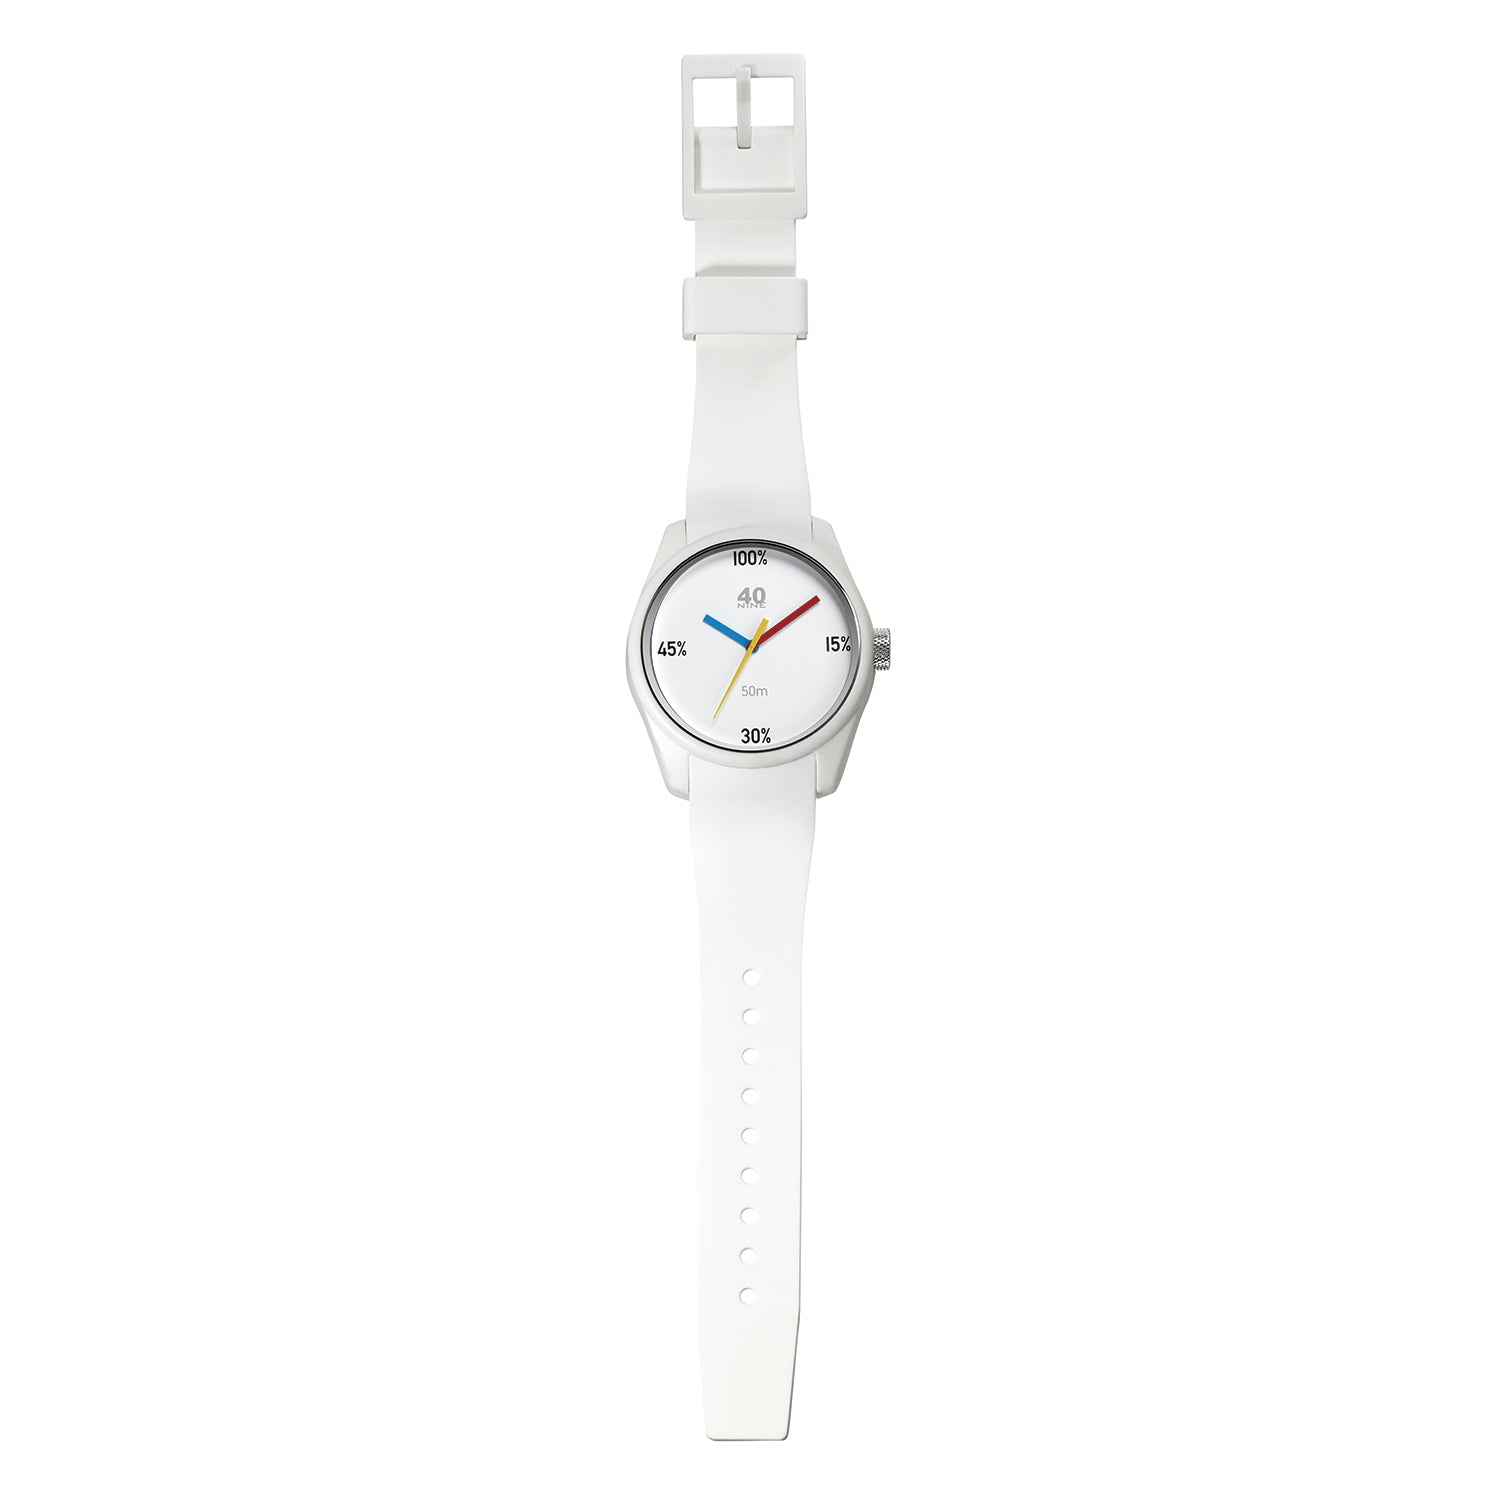 40N4.6W 40NINE 100% 43MM WATCH